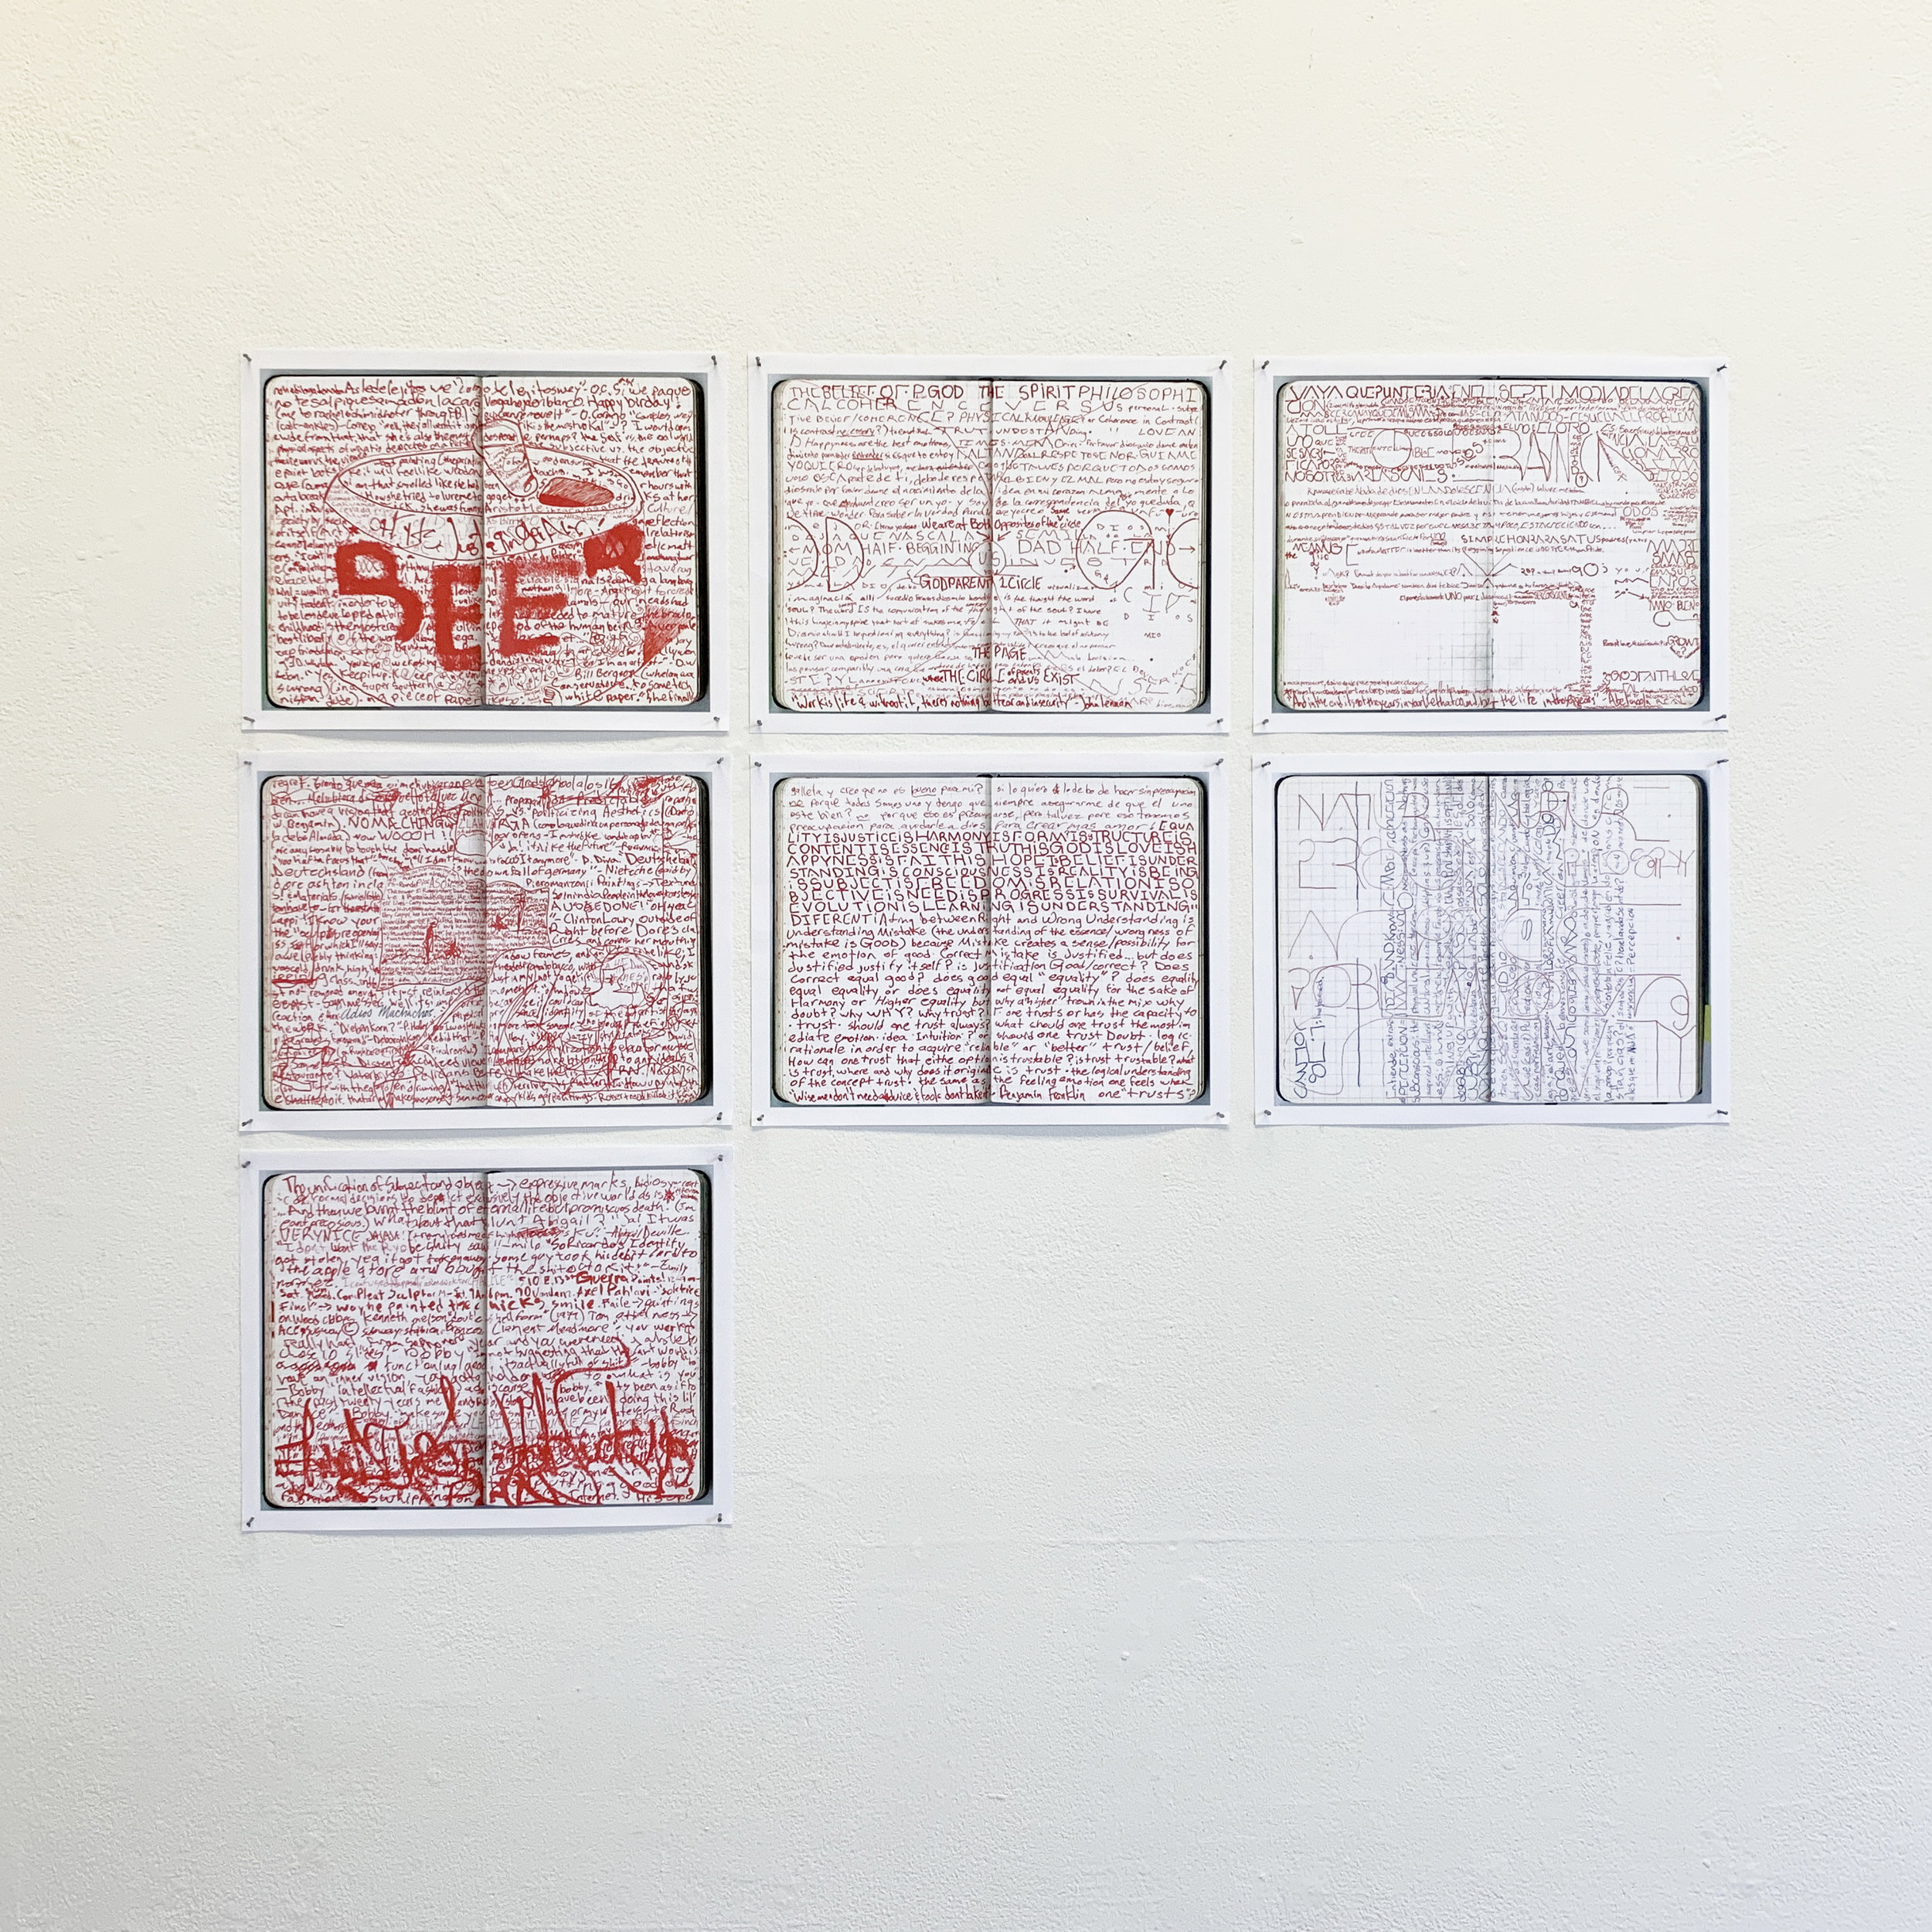 Carlos Martinez Ramos; a selection of pages (scanned and printed) from his notebooks, 2010-2012; in the collection of the artist